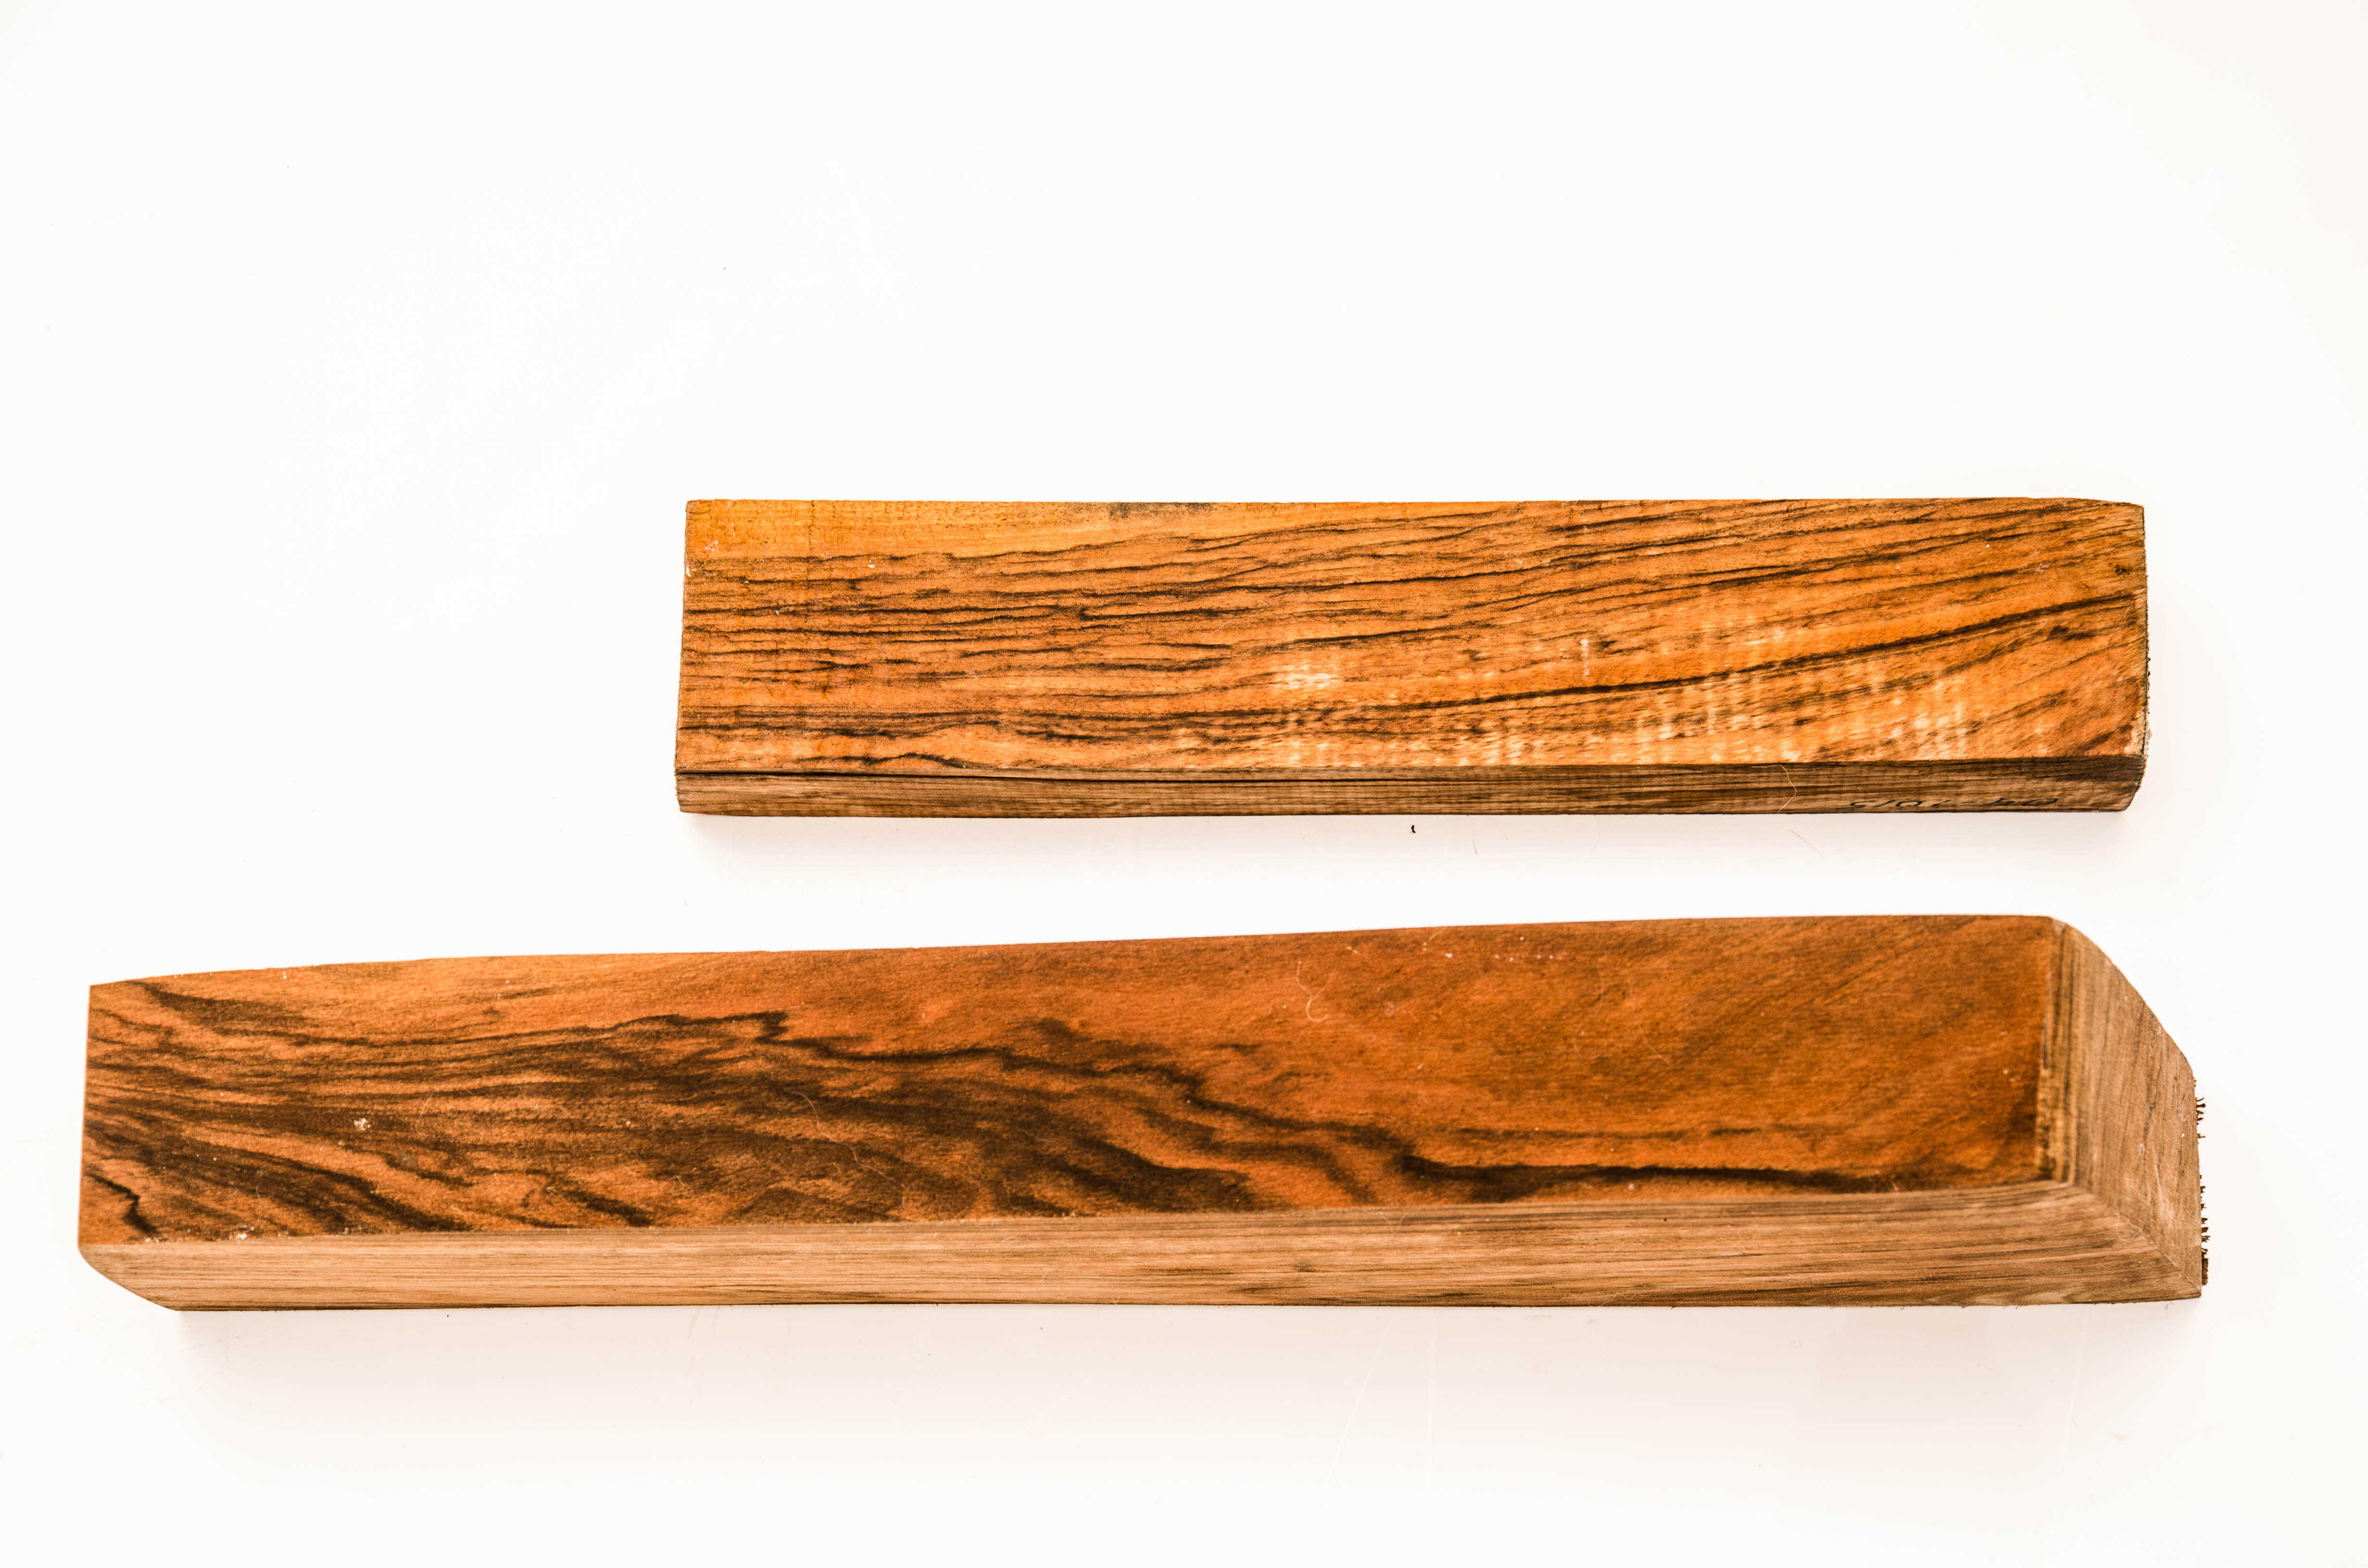 walnut_stock_blanks_for_guns_and_rifles-0371